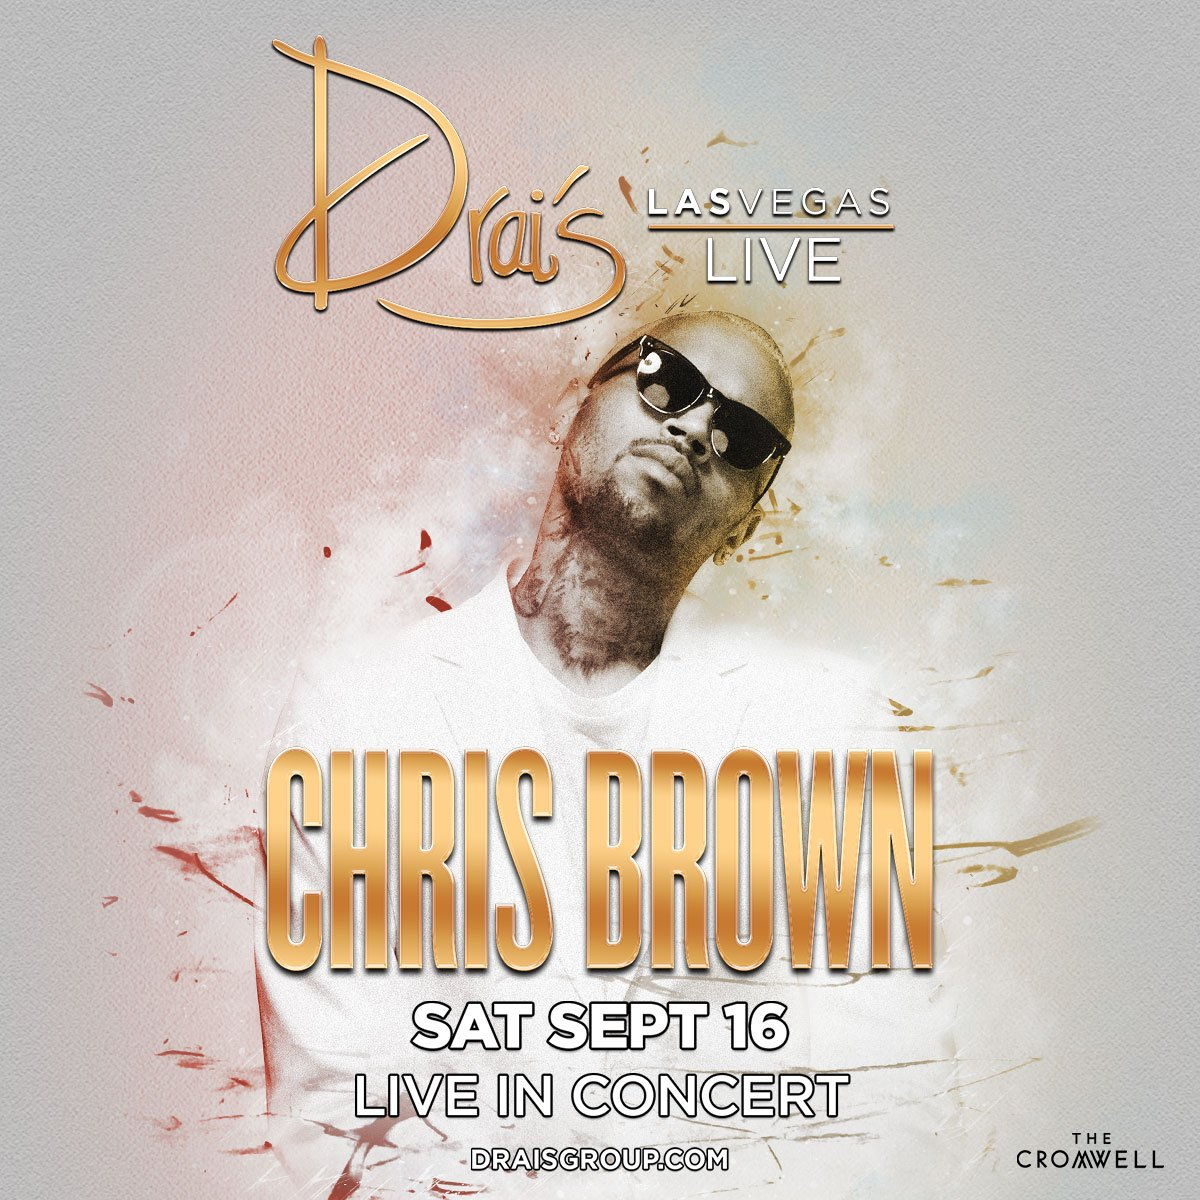 SEPTEMBER 16TH! @draislv #draislive https://t.co/GWM4xHM9xh https://t.co/jZTOM0Lw5Y